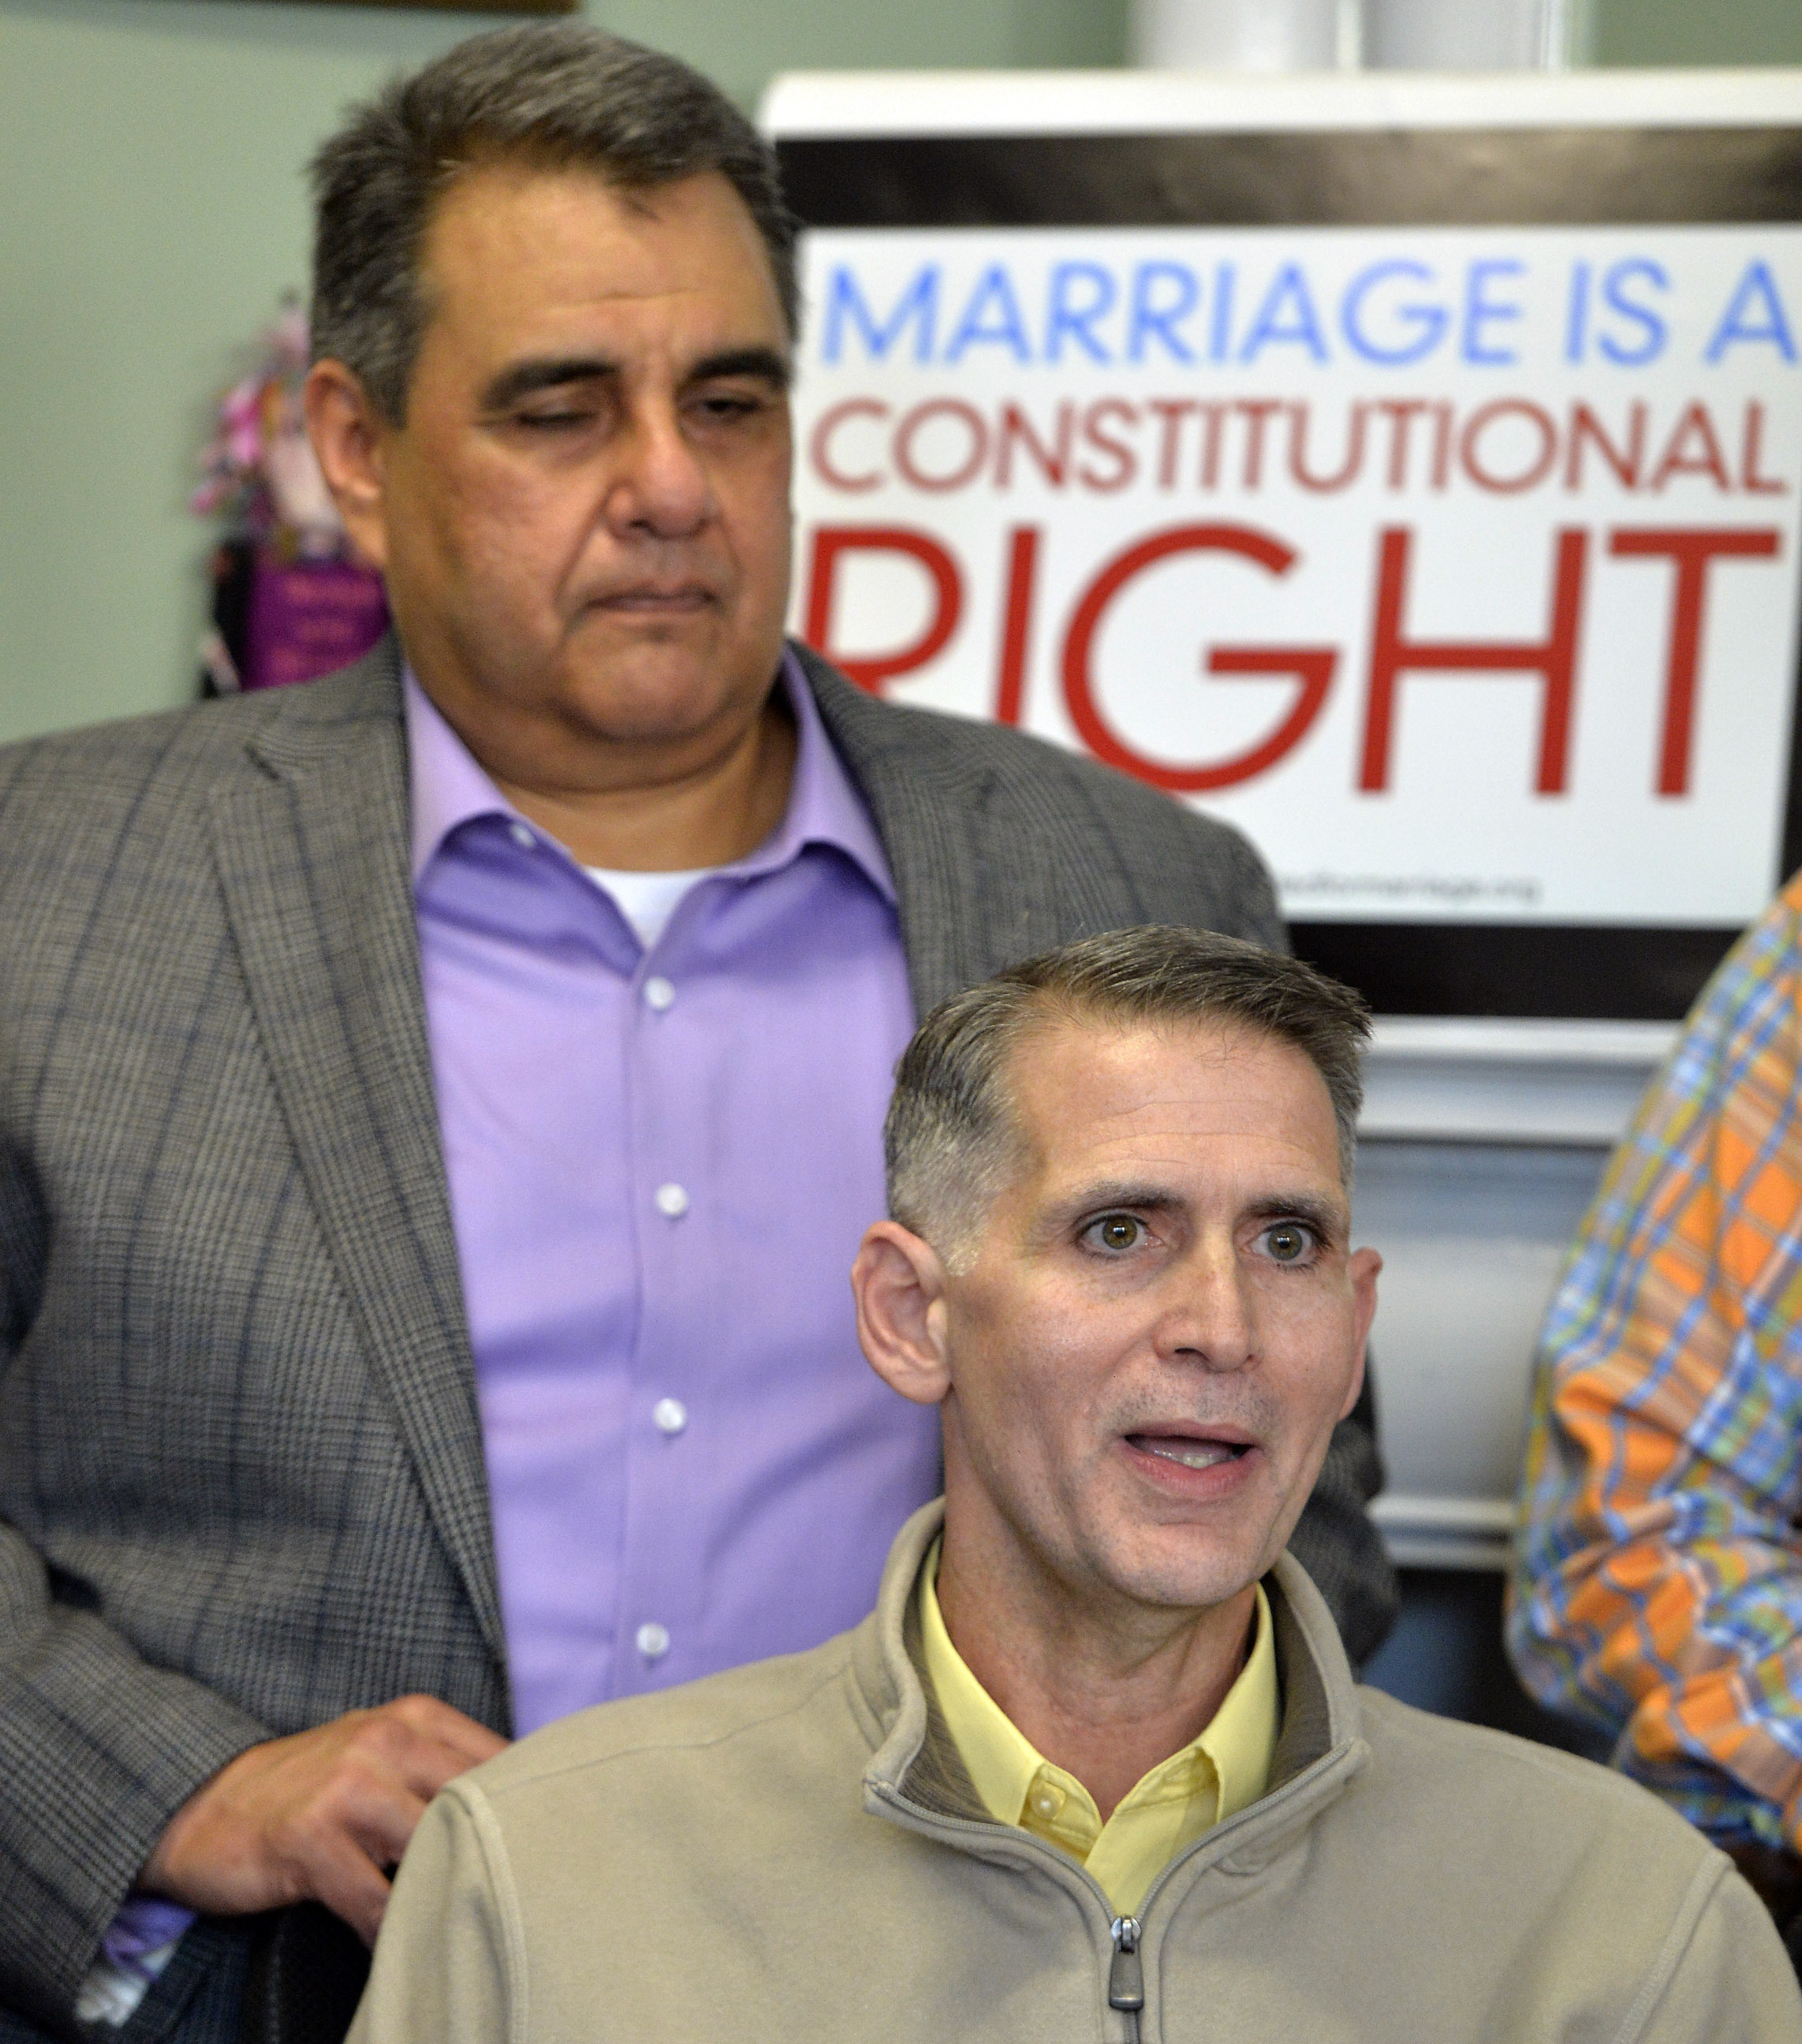 New Judge Strikes Down Puerto Rico Marriage Ban Hours After Lambda Legal Victory